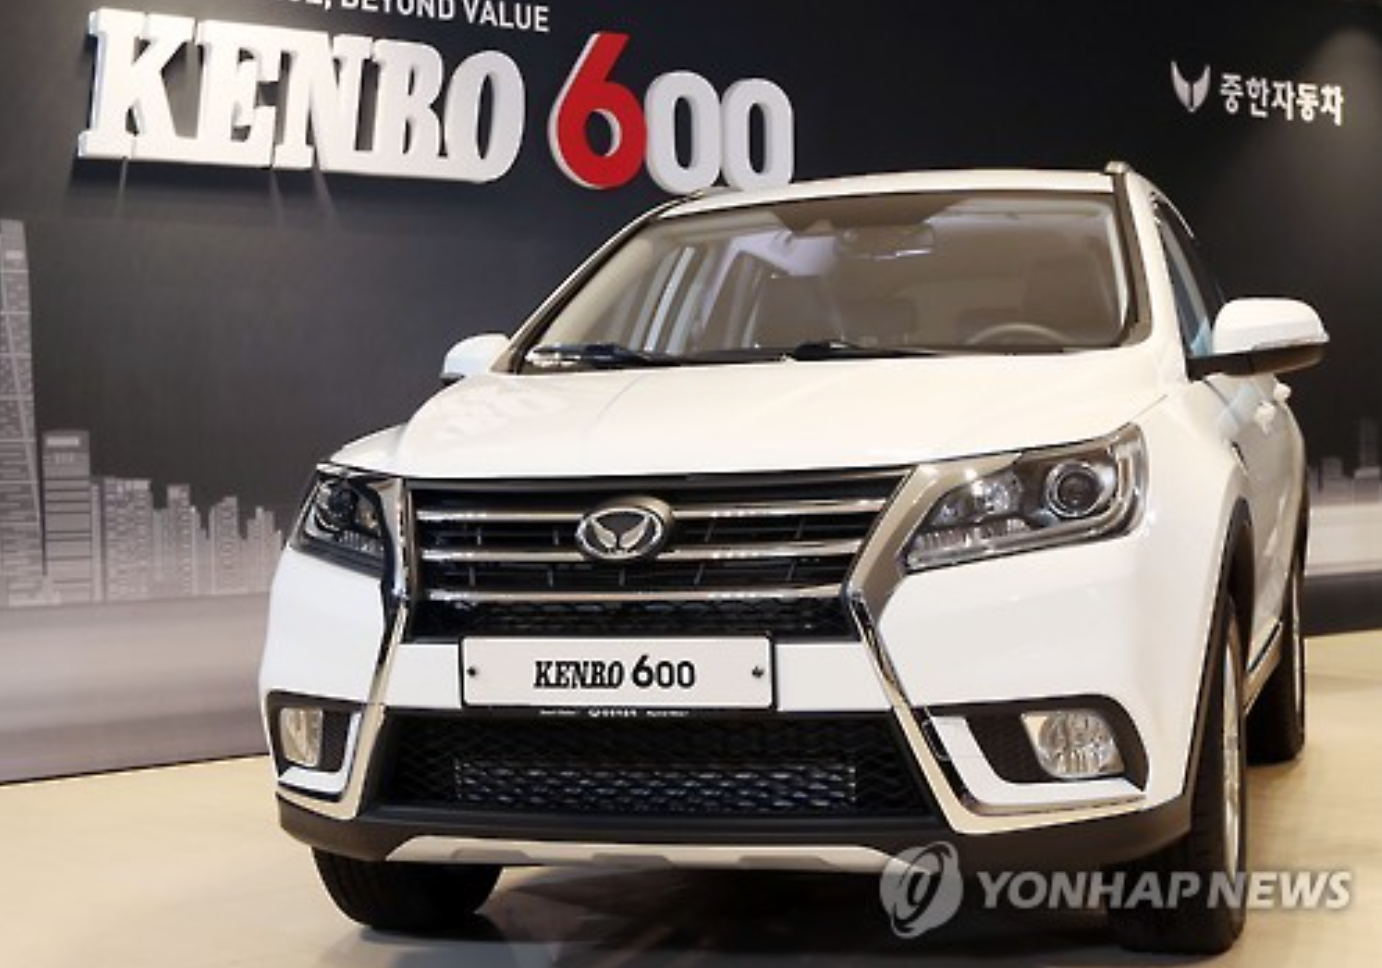 First Chinese Passenger Vehicle Launches in Korea | Be Korea-savvy